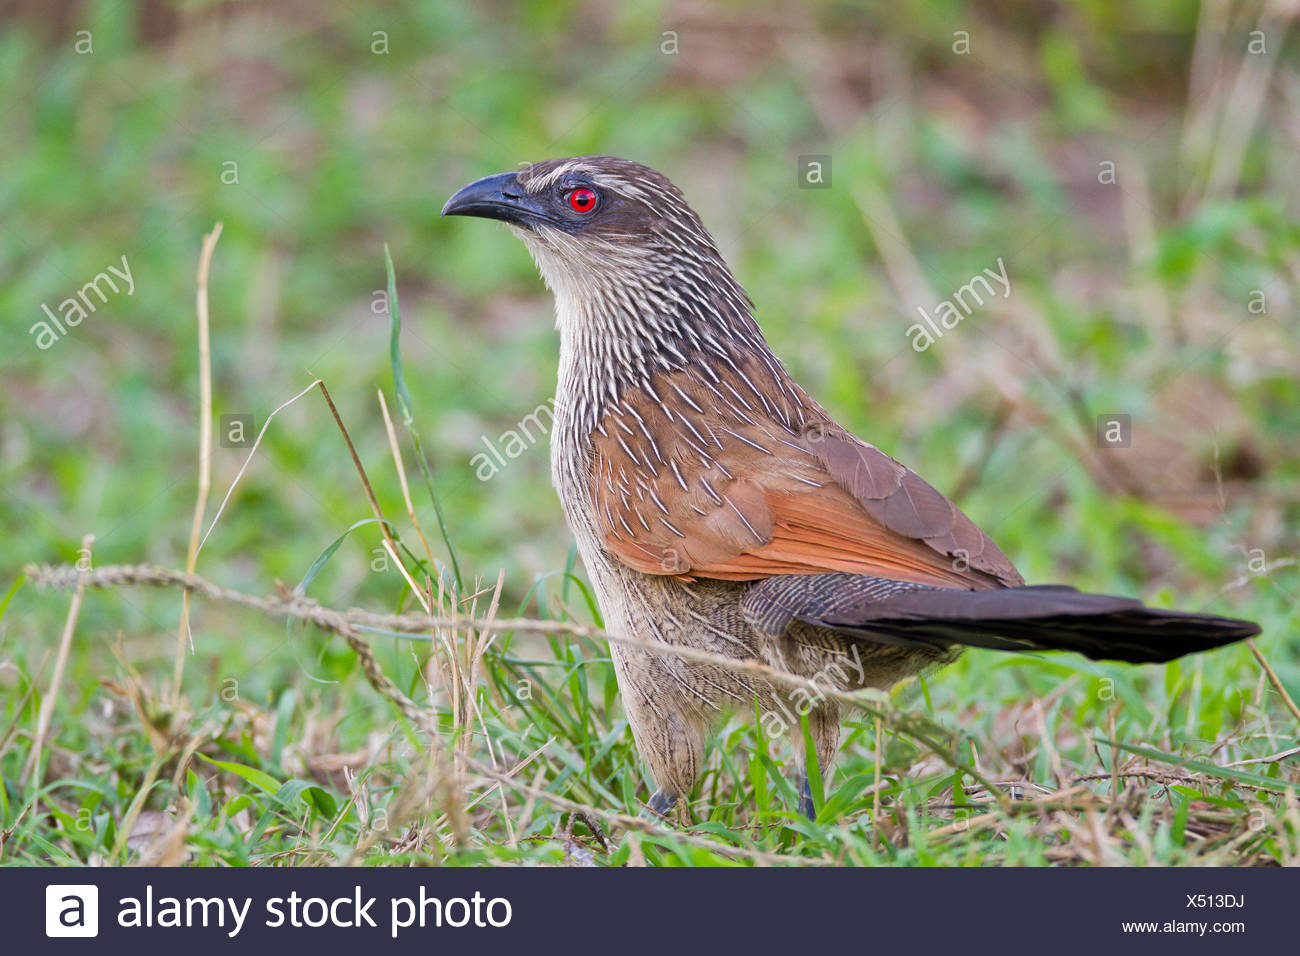 Close-up of a white-browed coucal, Centropus superciliosus. - Stock Image